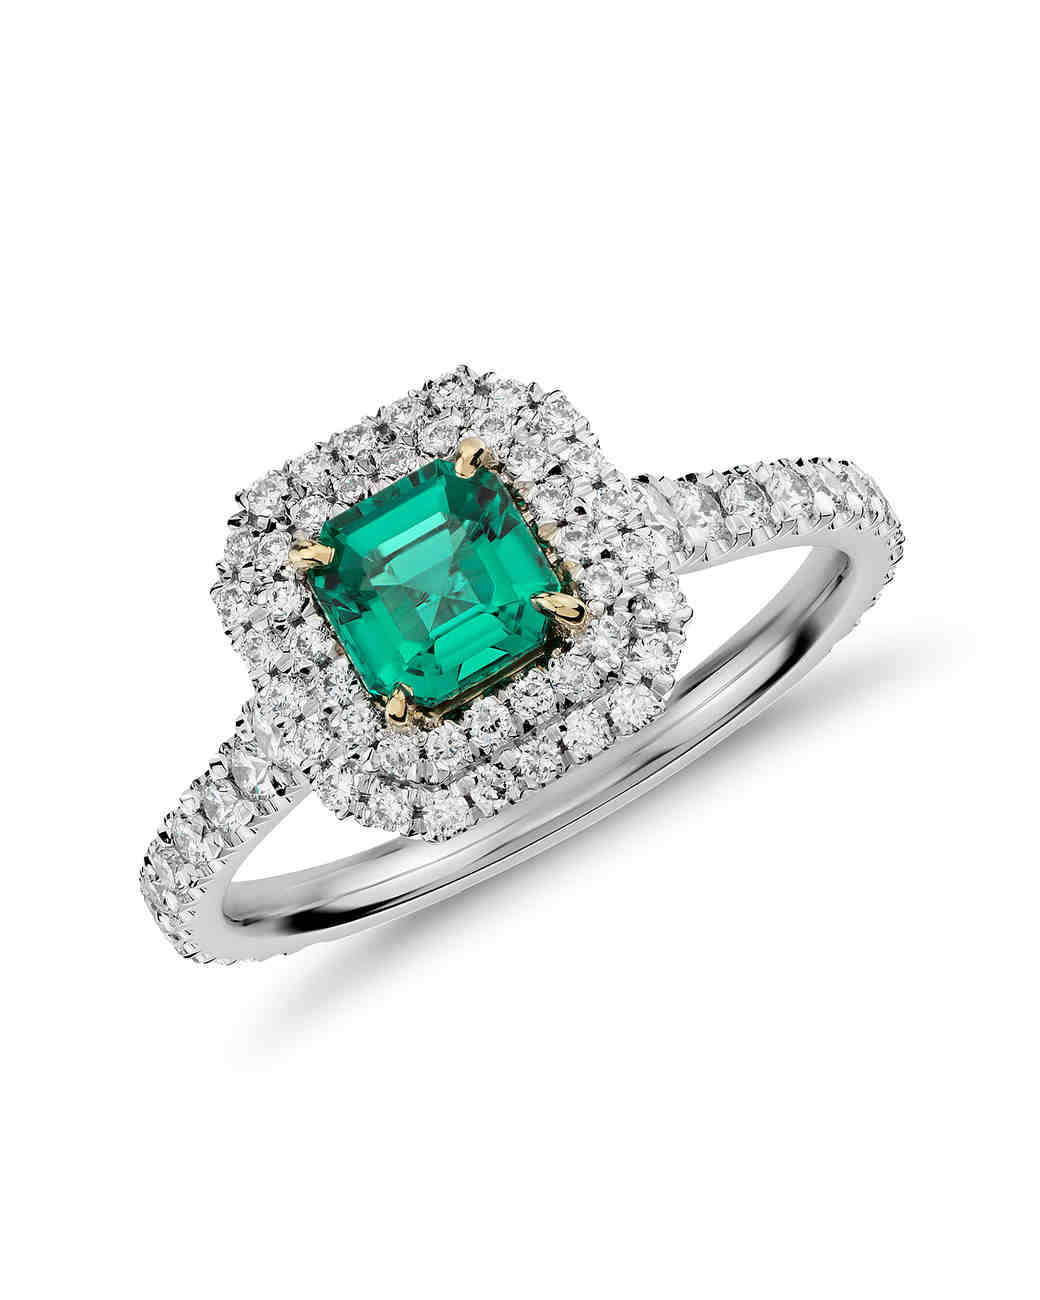 emerald and micropav diamond engagement ring - Colored Wedding Rings